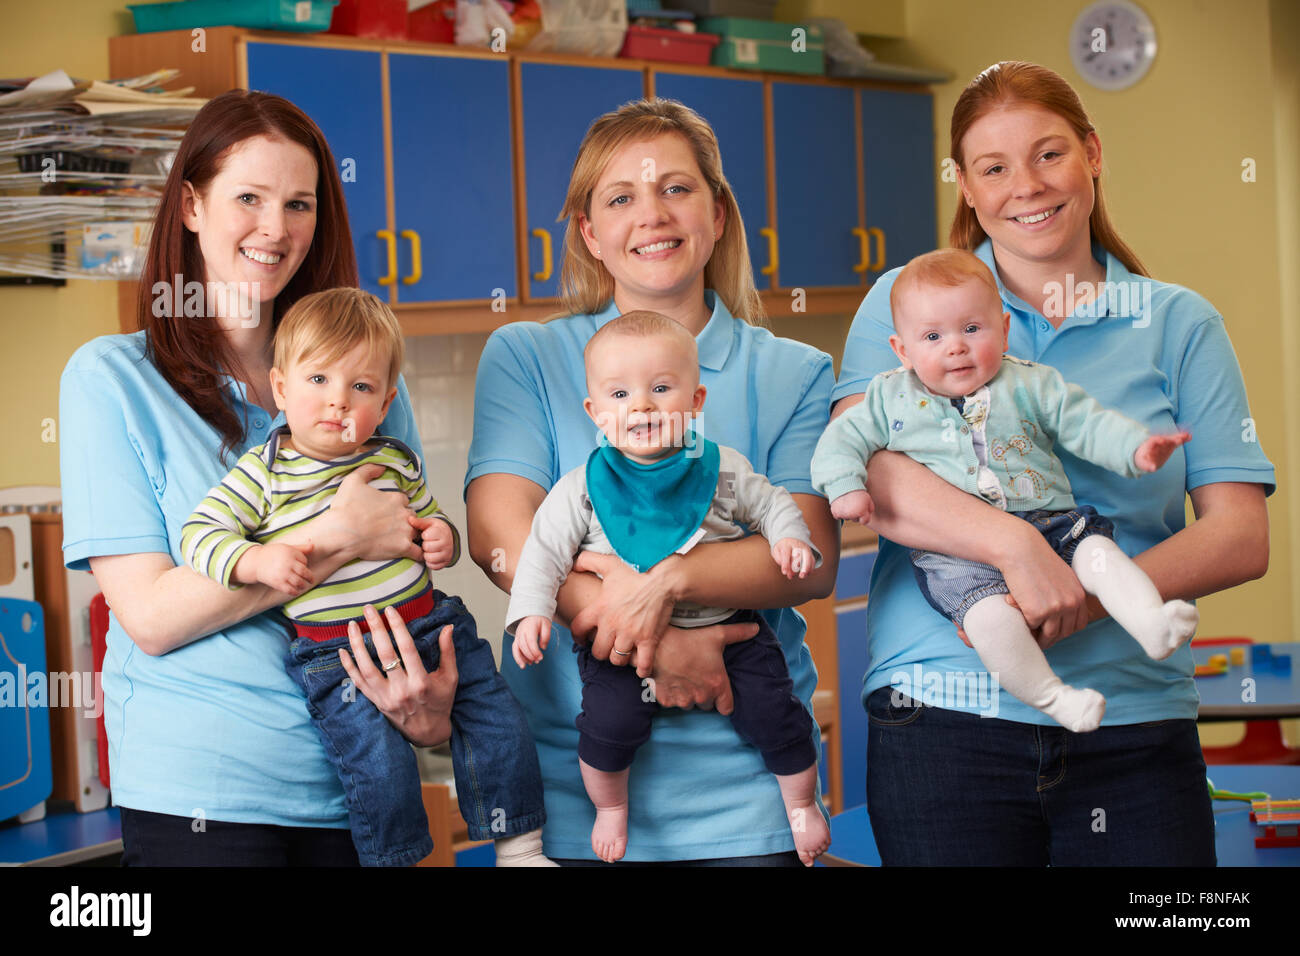 group-of-workers-with-babies-in-nursery-F8NFAK.jpg?profile=RESIZE_400x